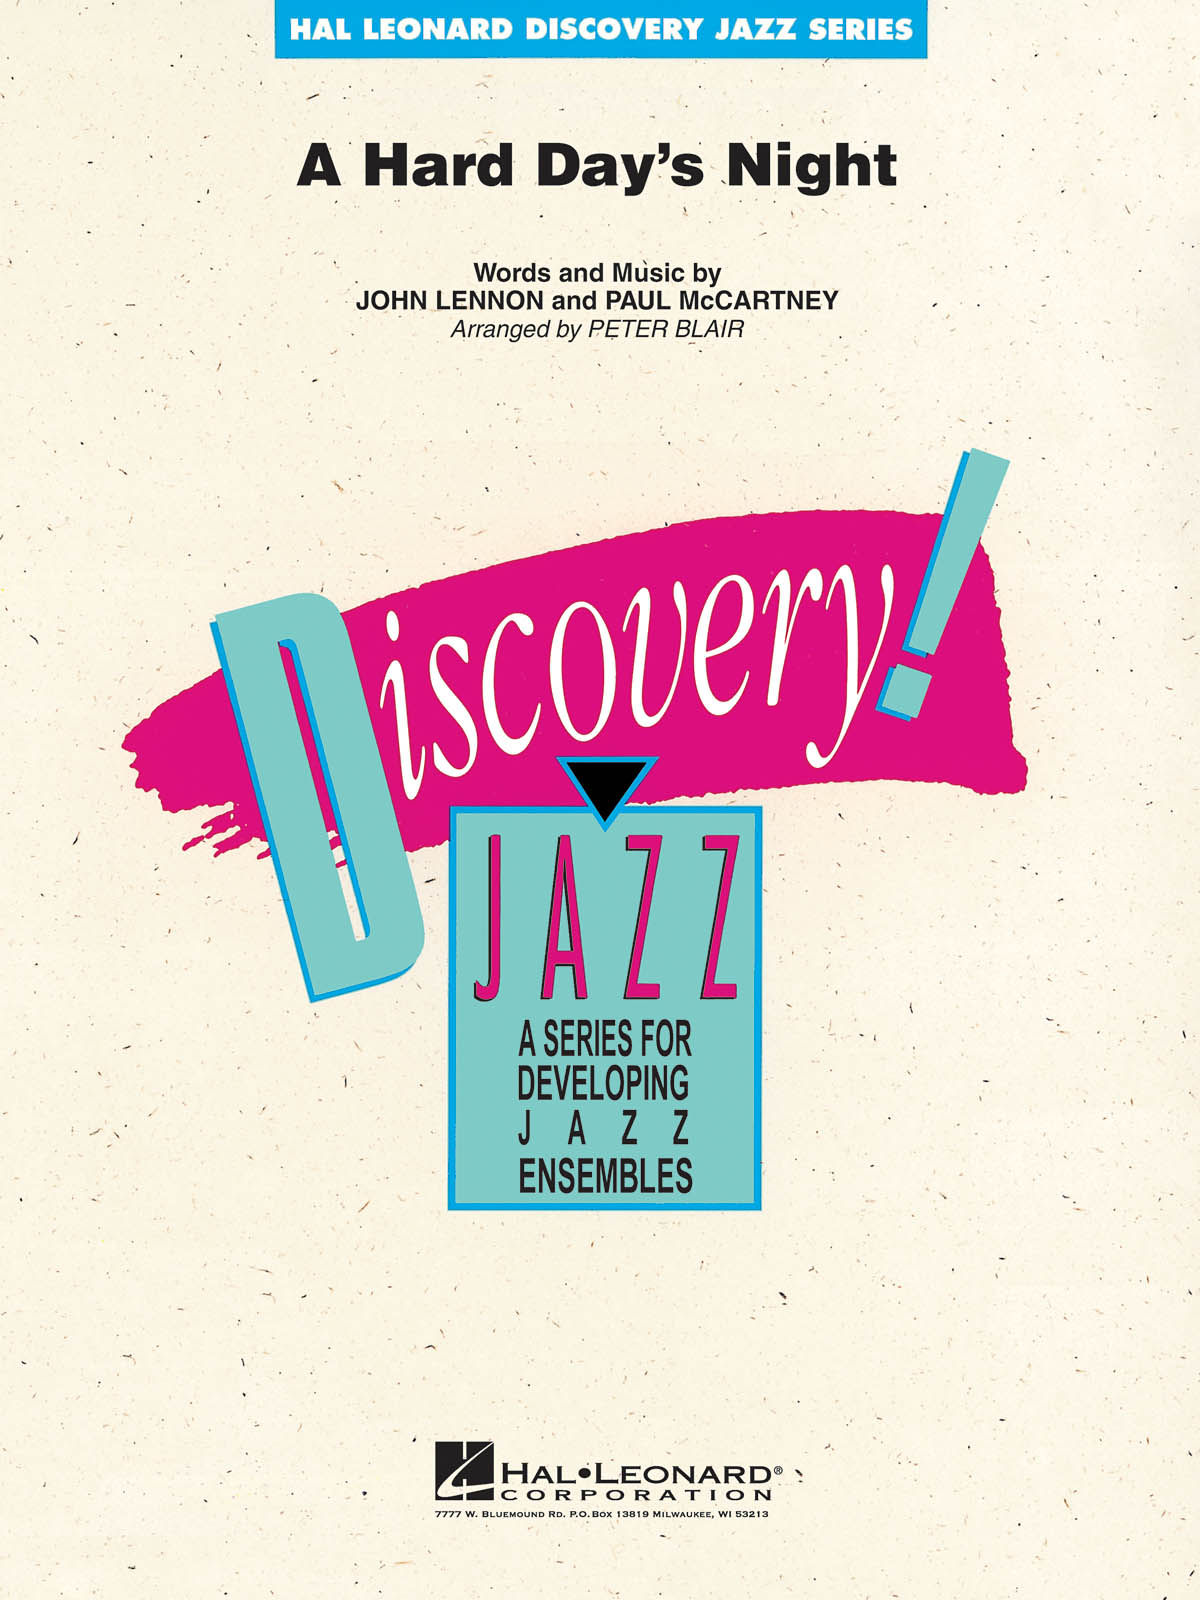 A Hard Day's Night: Discovery Jazz